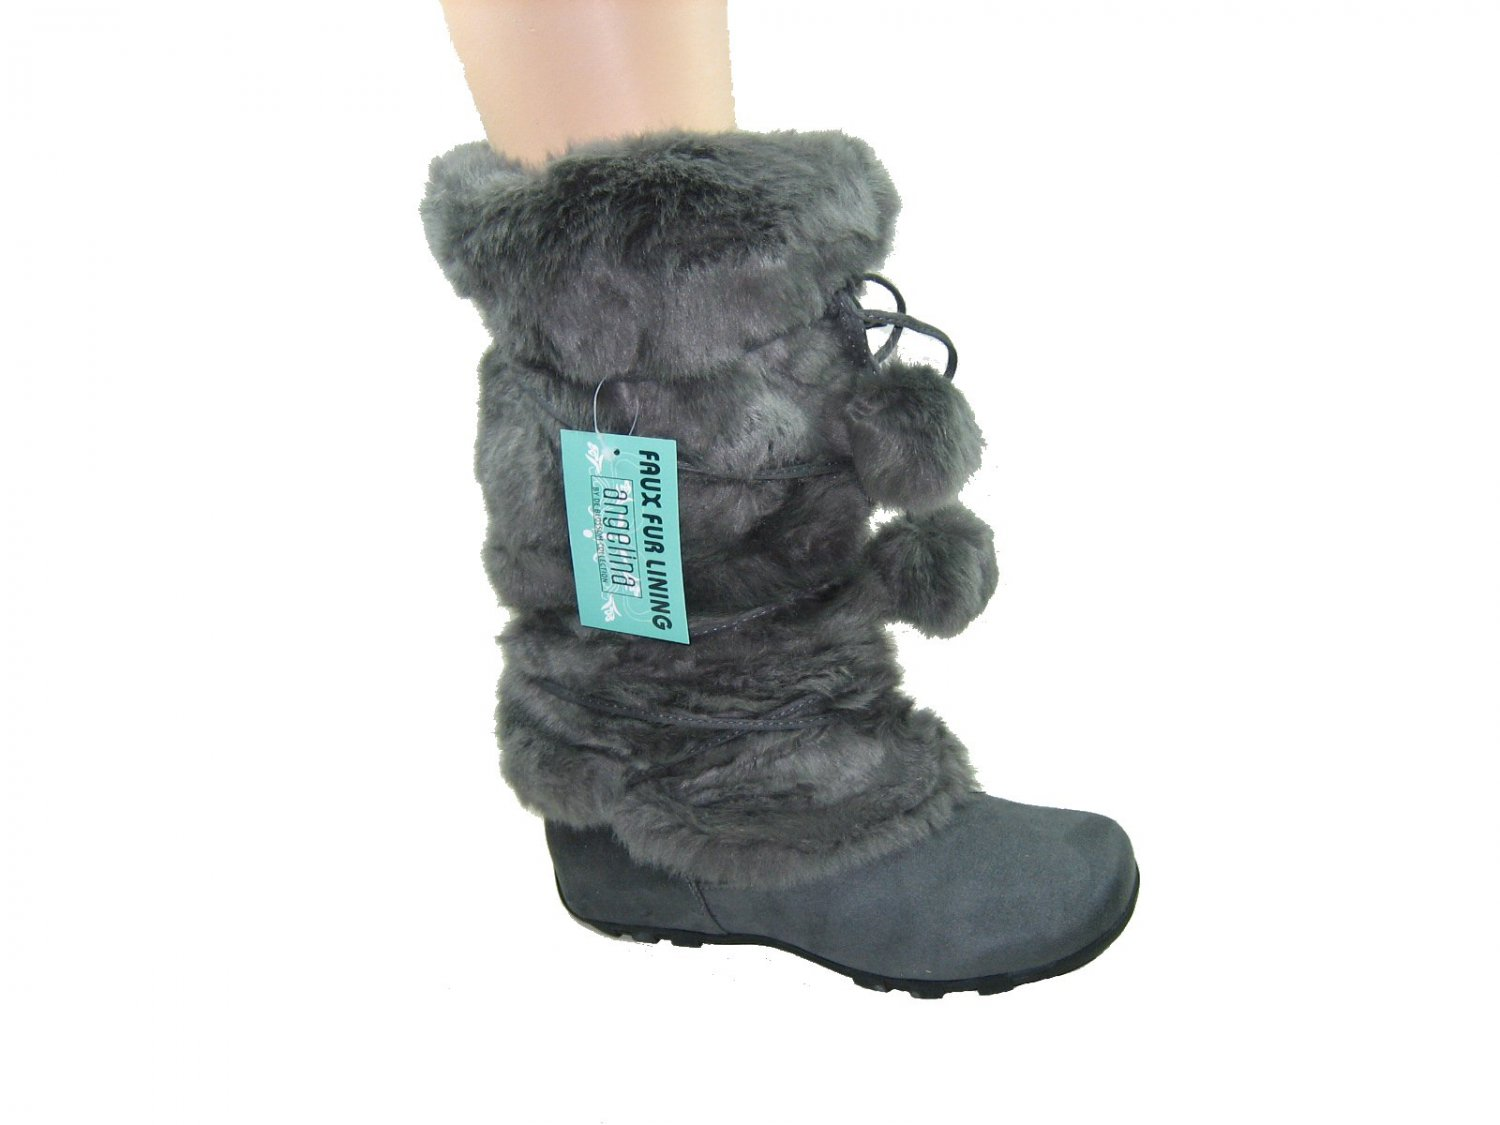 Blossom women's fashion gray faux suede mid-calf faux fur pom pom winter boots size 7.5